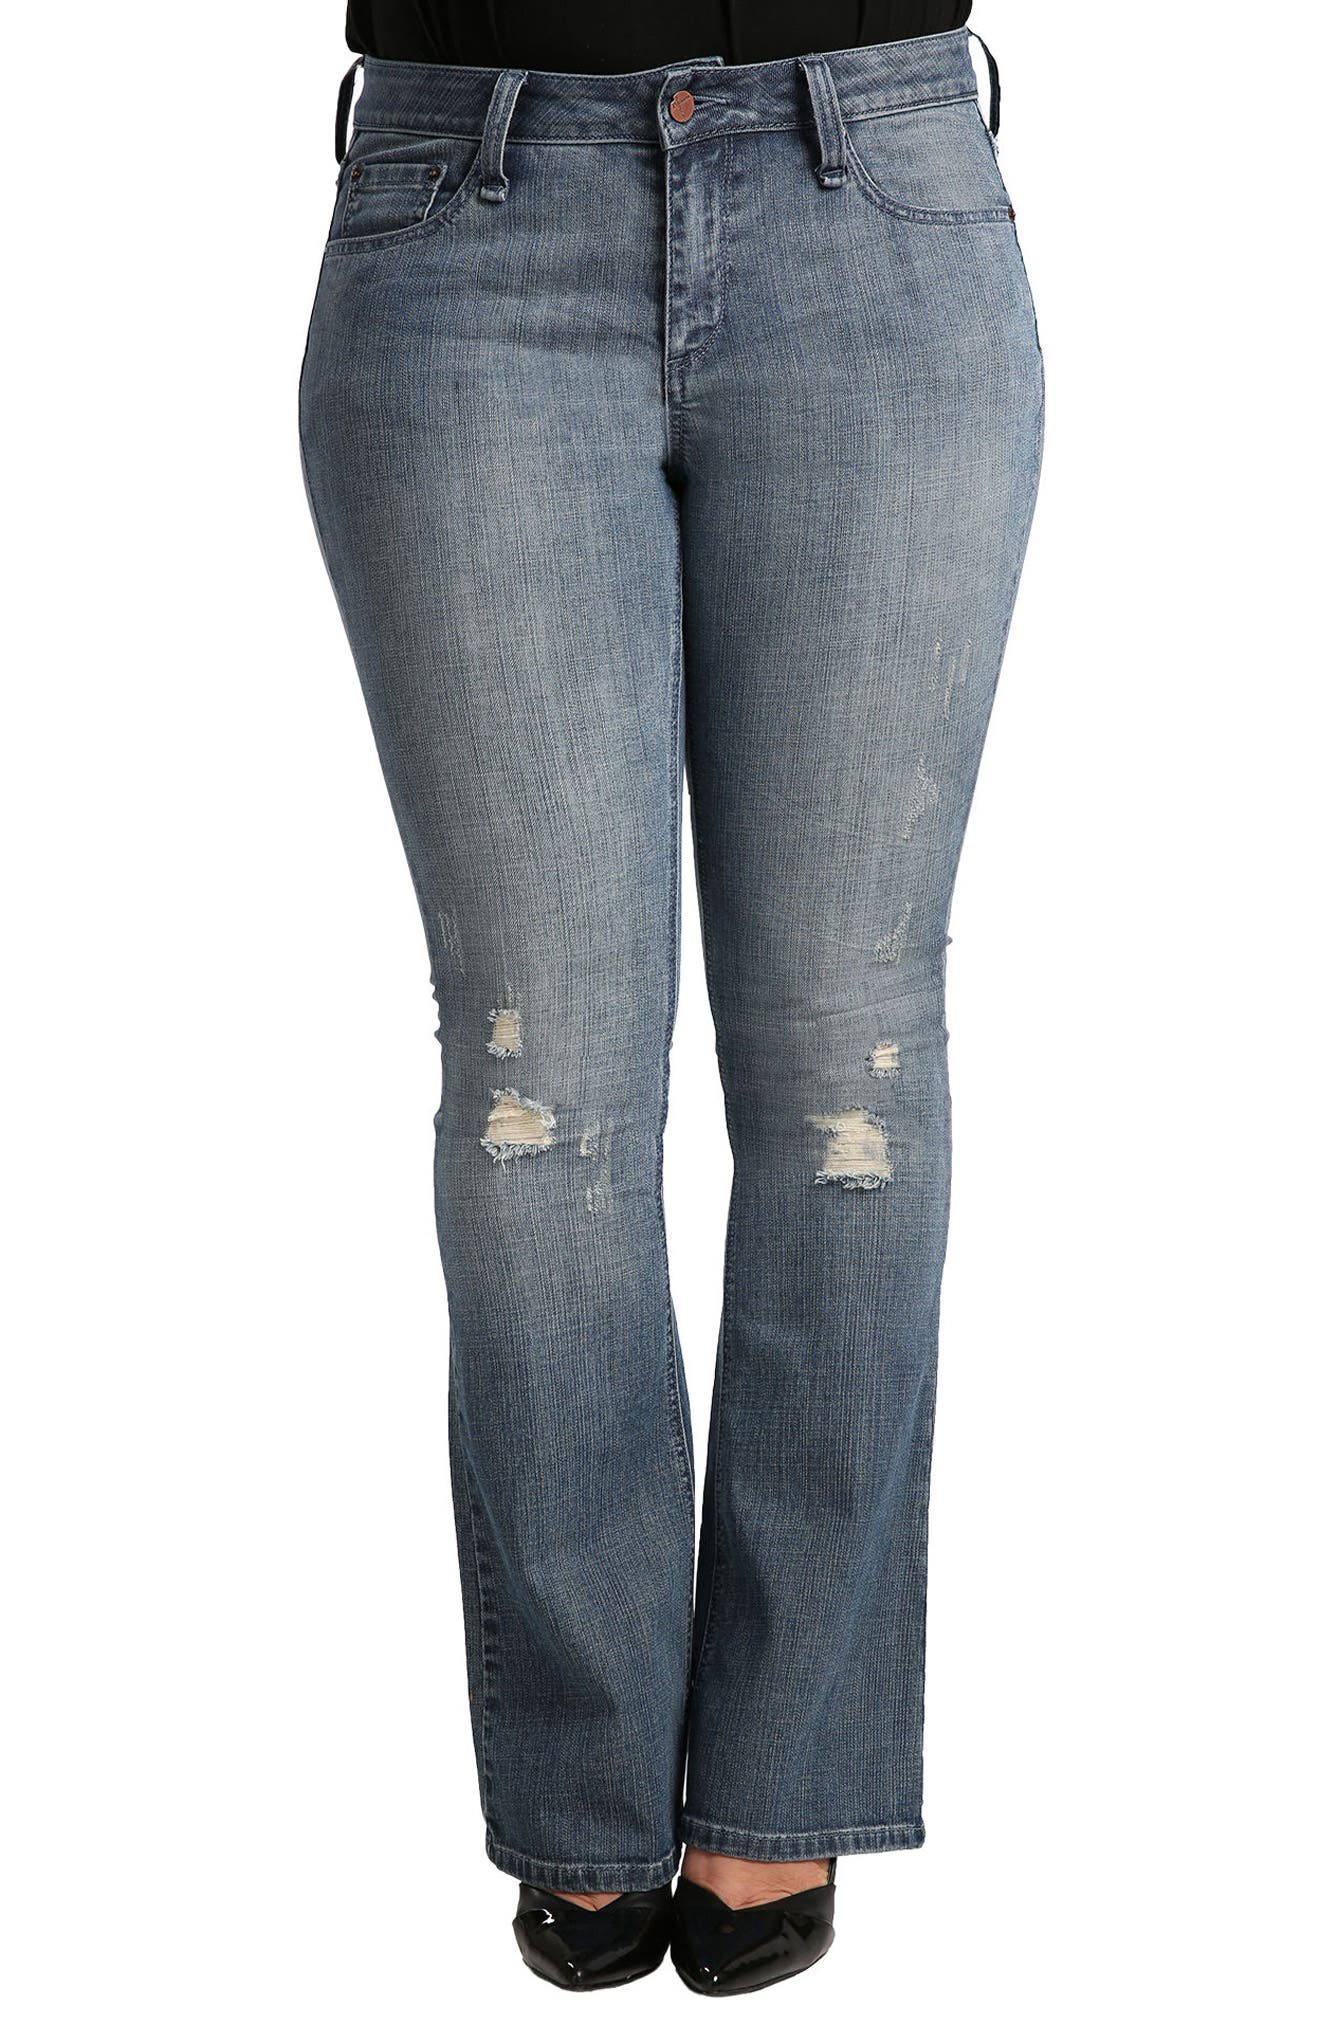 Clarice Uptown Mid Rise Bootcut Jeans,                         Main,                         color, 1054BOYTOY